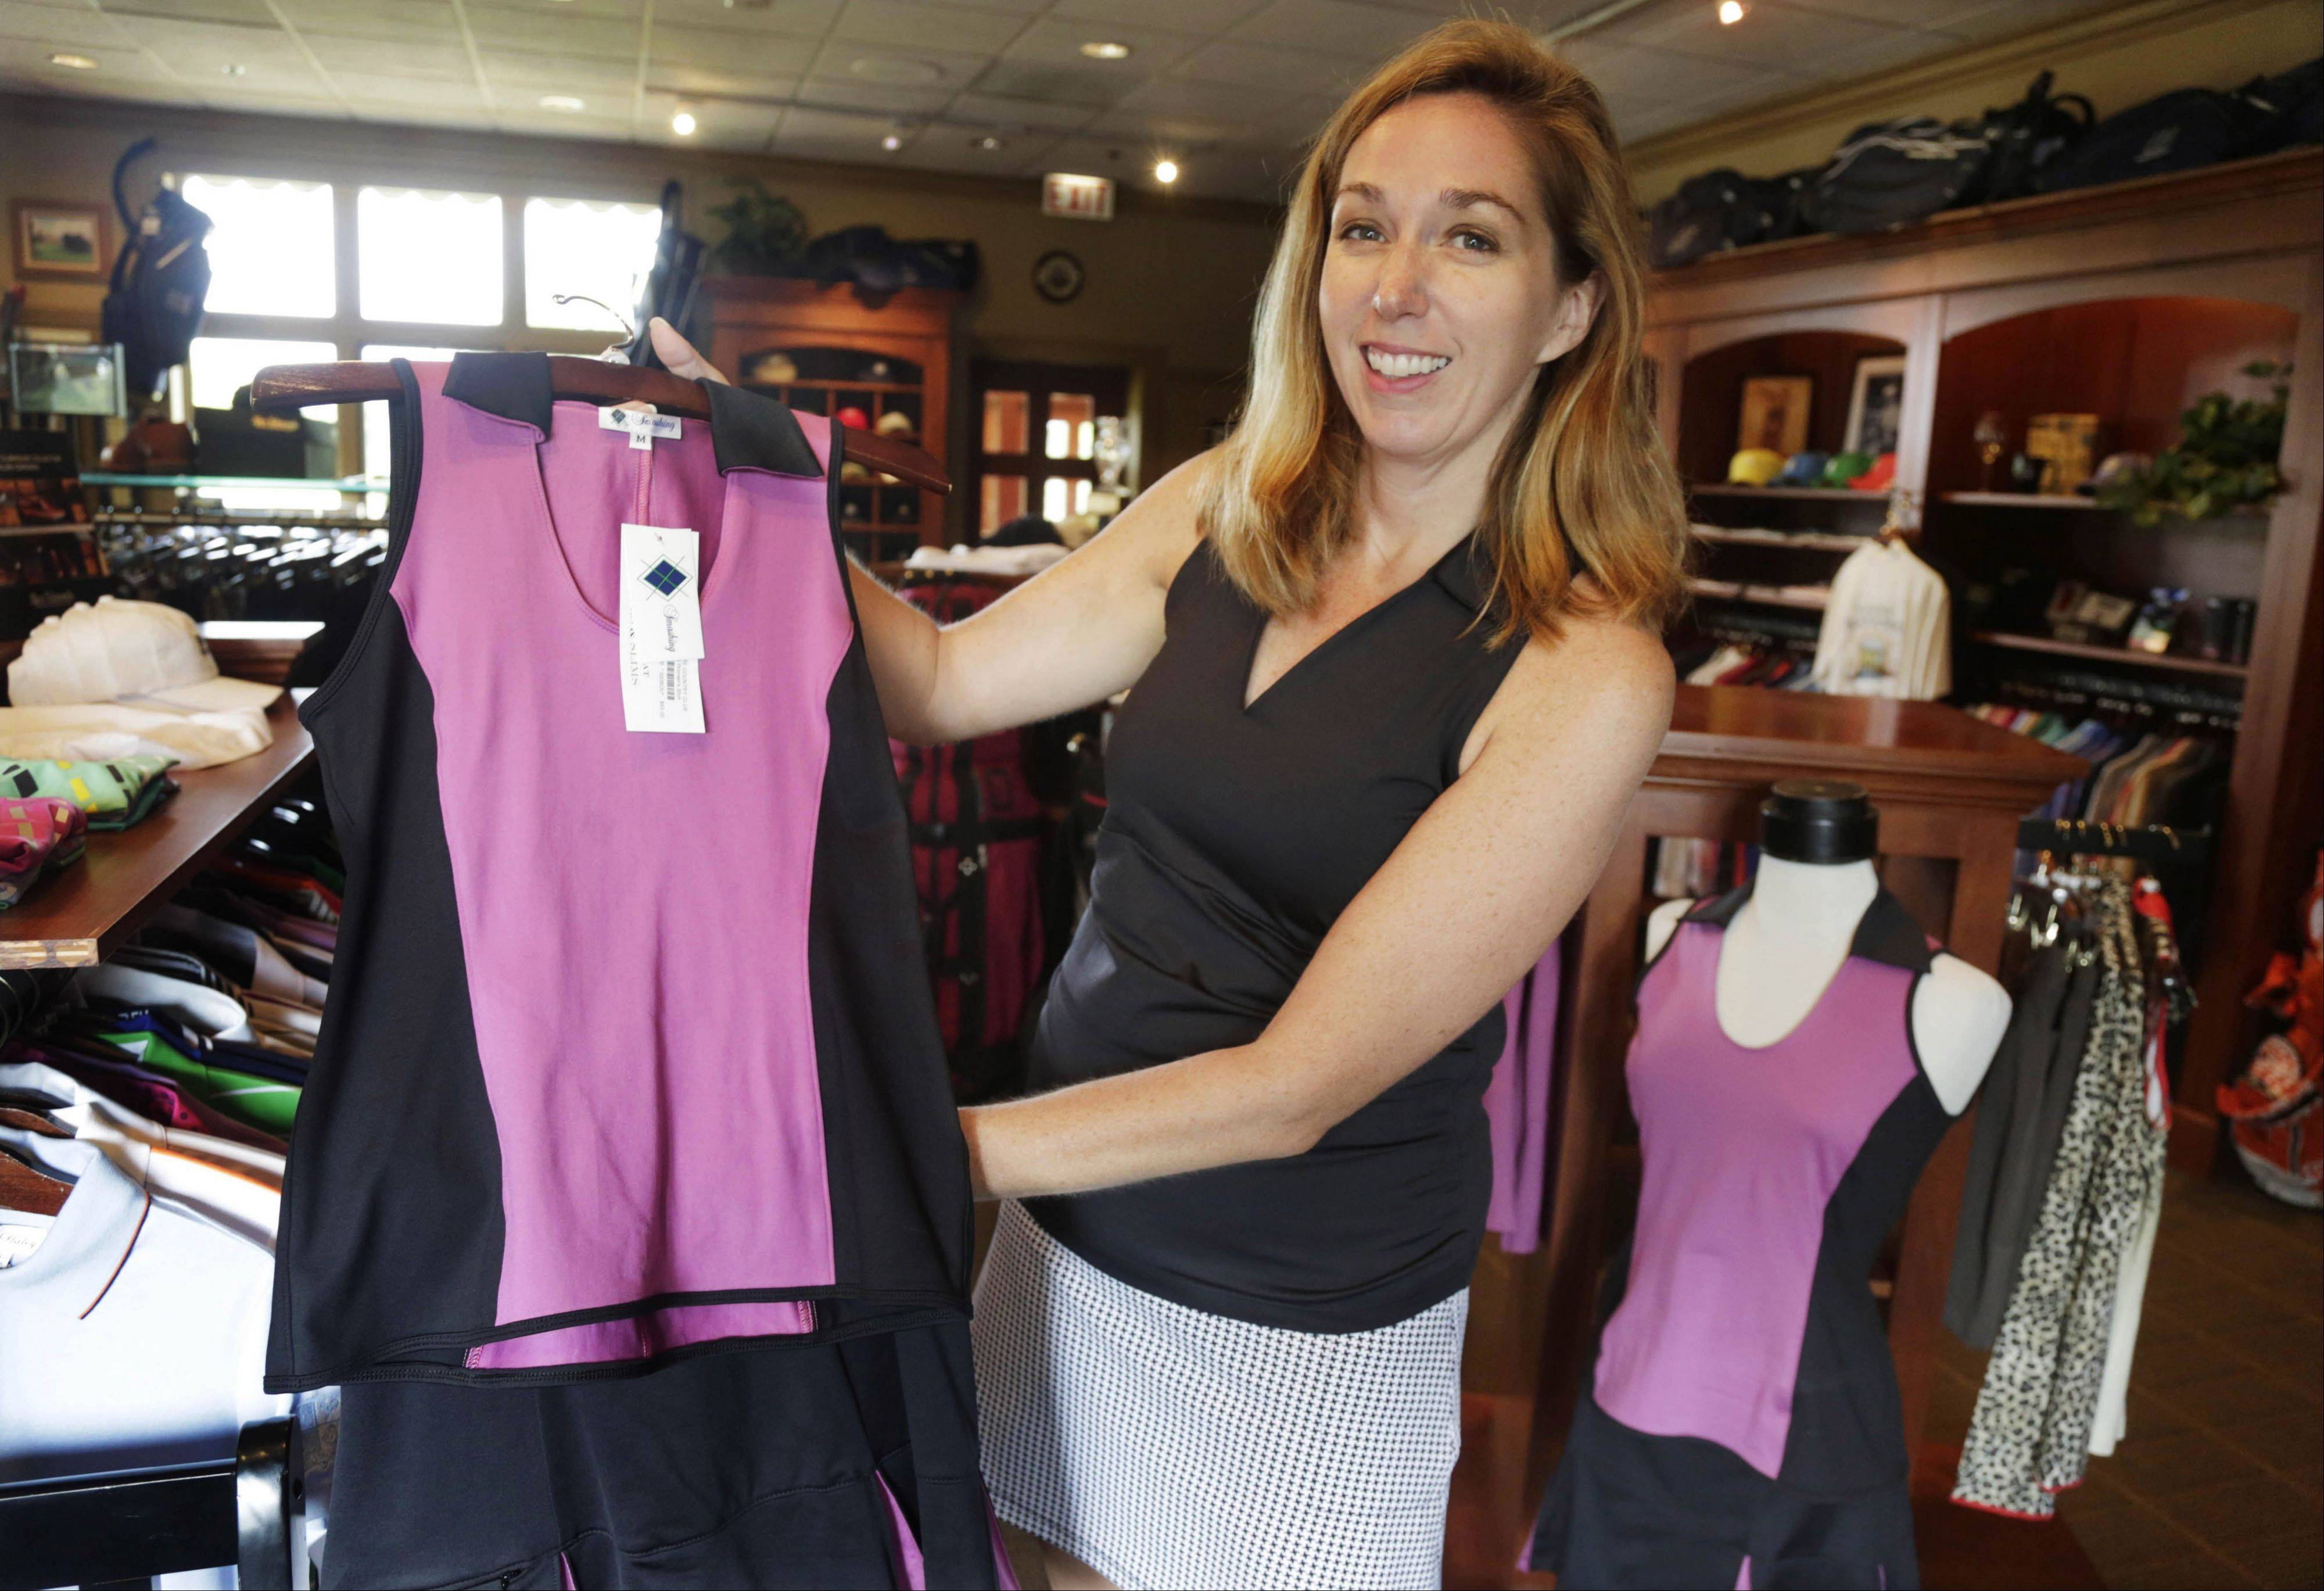 Kelly Daugherty, co-owner of Smashing Golf & Tennis, with her clothing line in the pro shop at Biltmore Country Club in North Barrington. The owners of Smashing Golf & Tennis can�t take vacations this summer because they�re training new sales people for the company�s line of active wear for women. They also are getting their spring styles ready and have to be around for last-minute orders, as this is high season for golfers and tennis players.